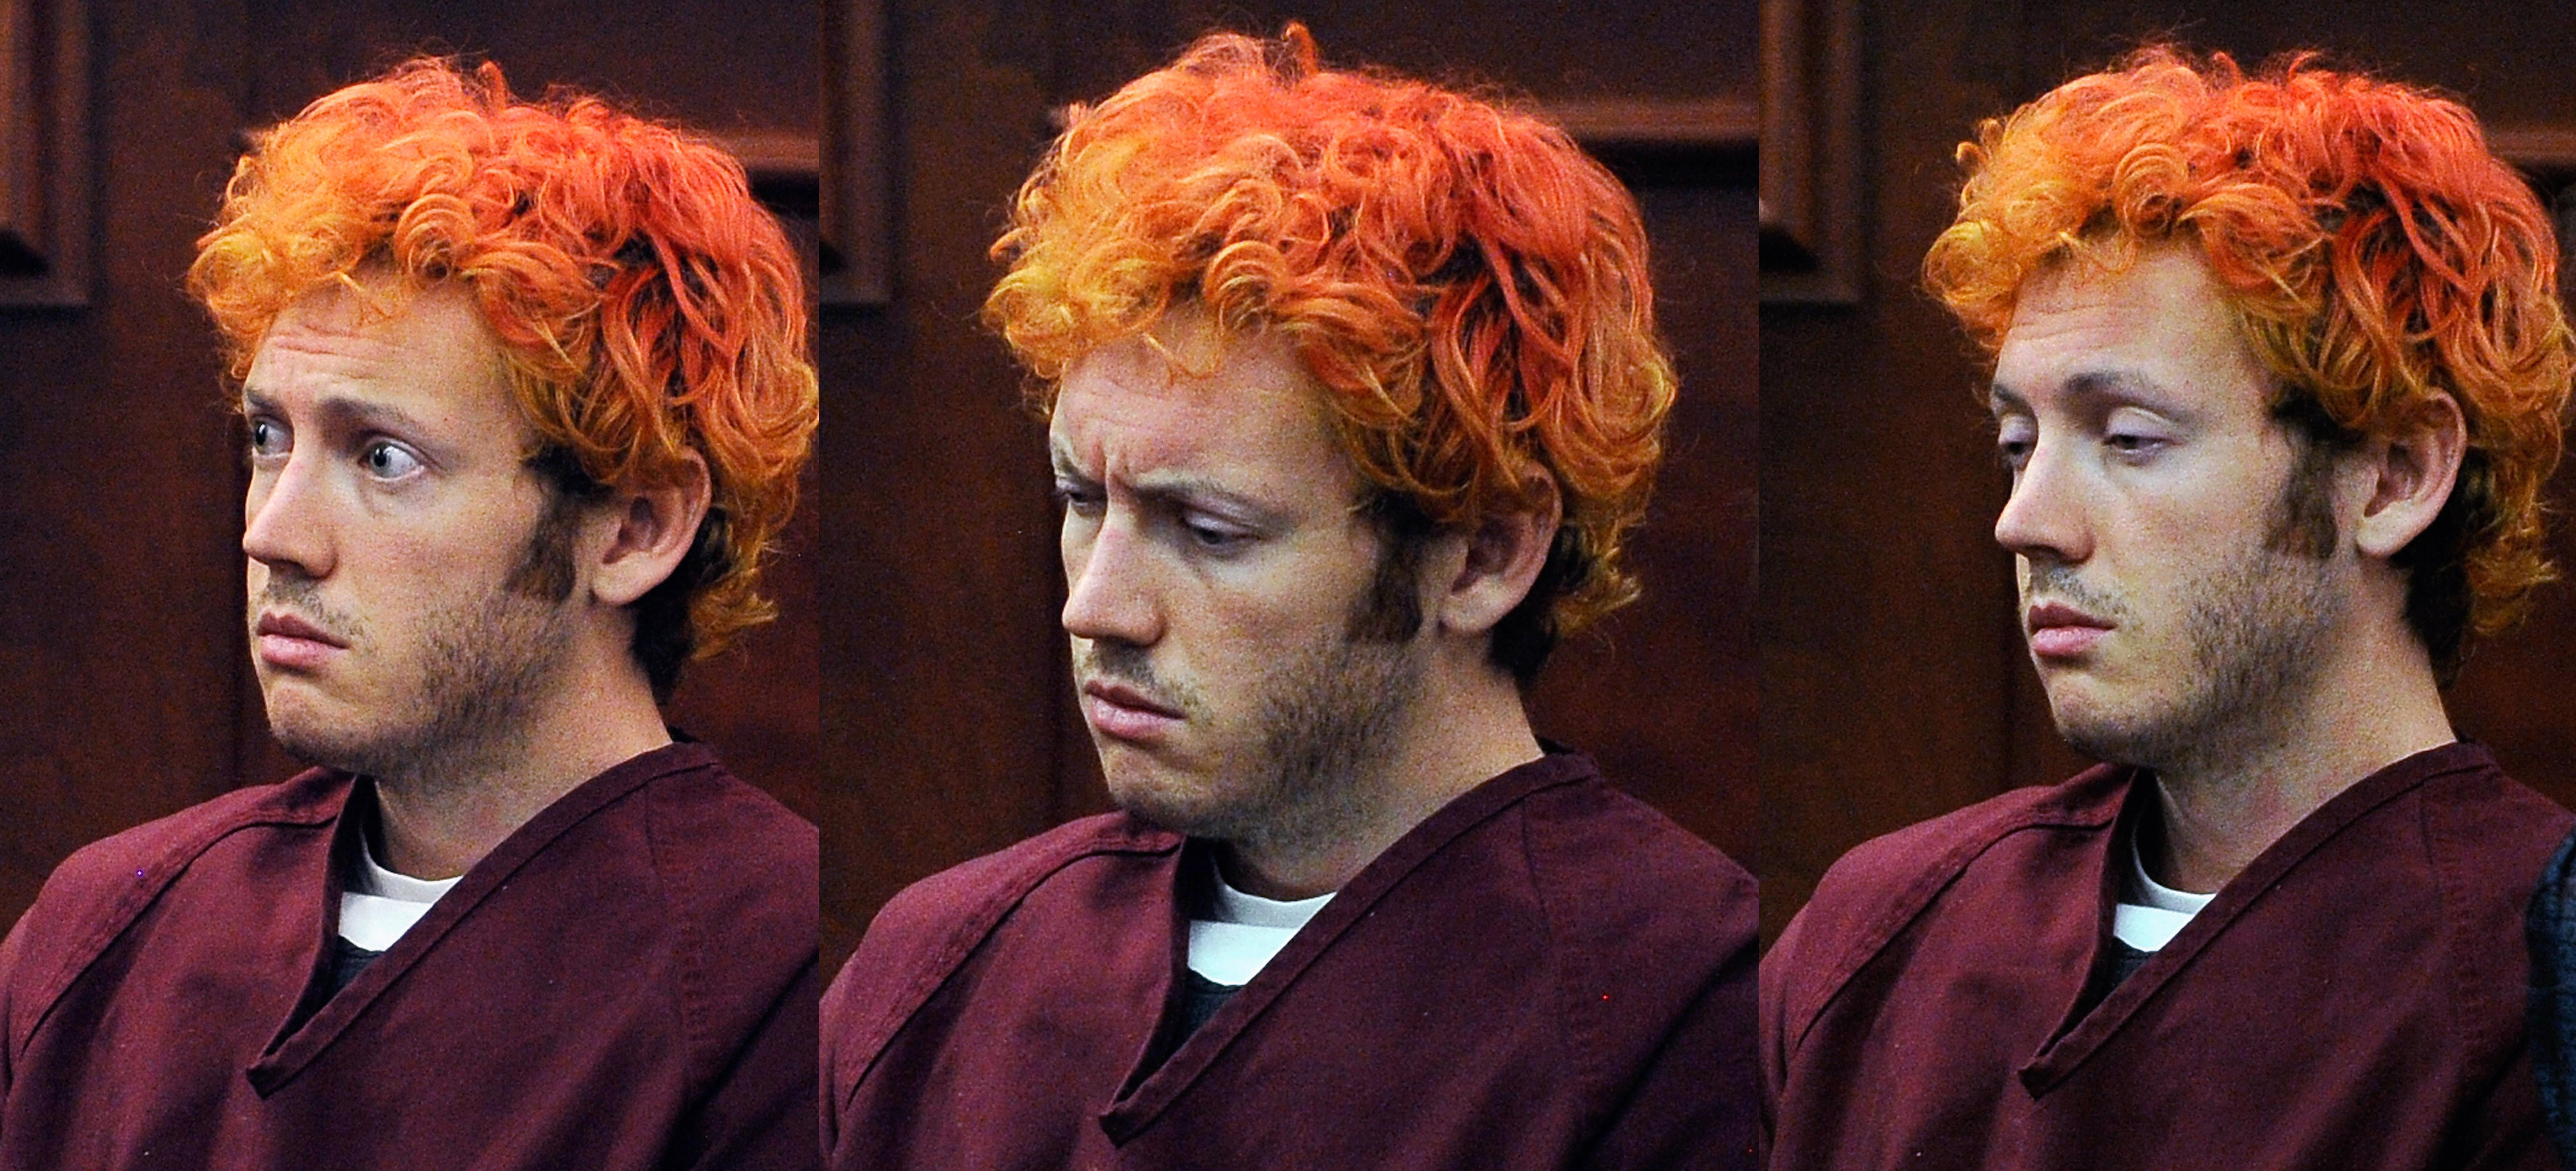 James Holmes makes his first court appearance at the Arapahoe County.